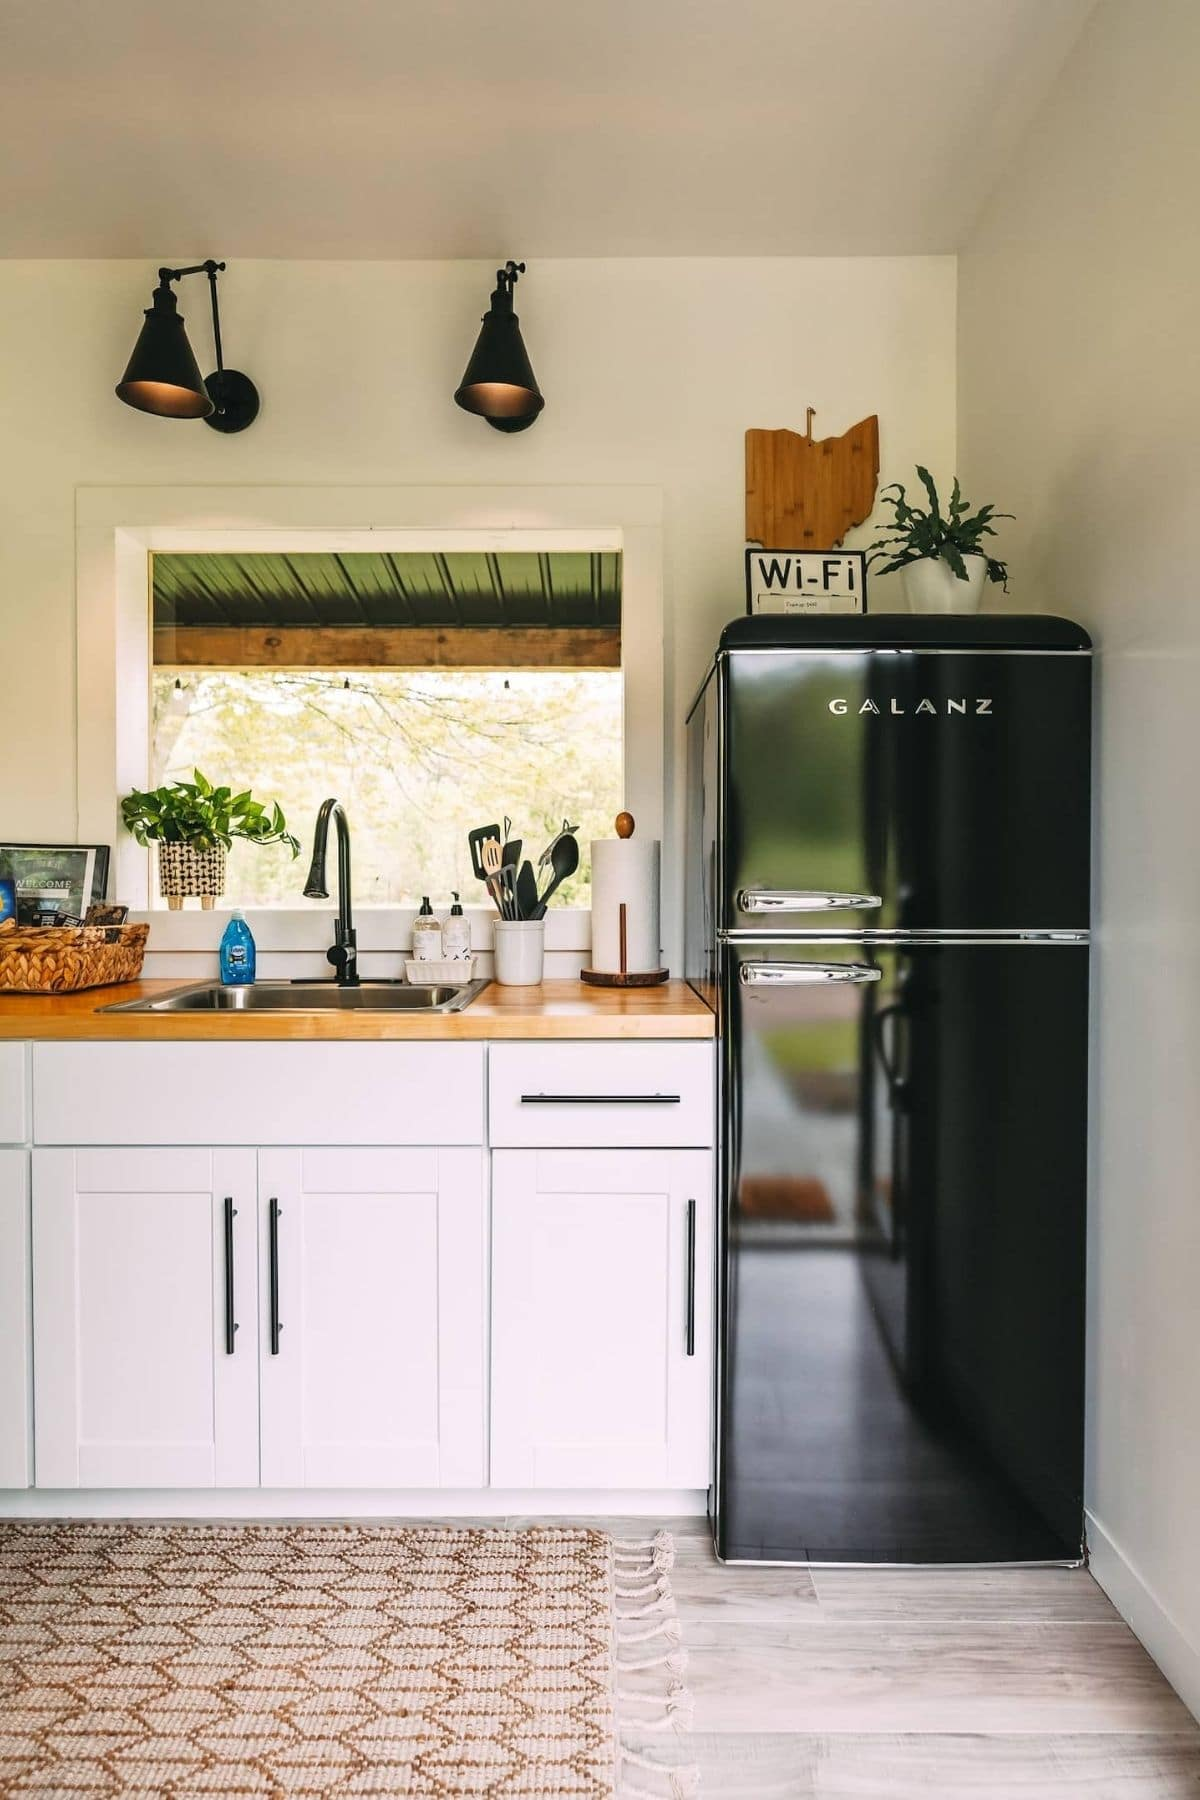 Apartment sized black refrigerator against wall next to white cabinets and sink